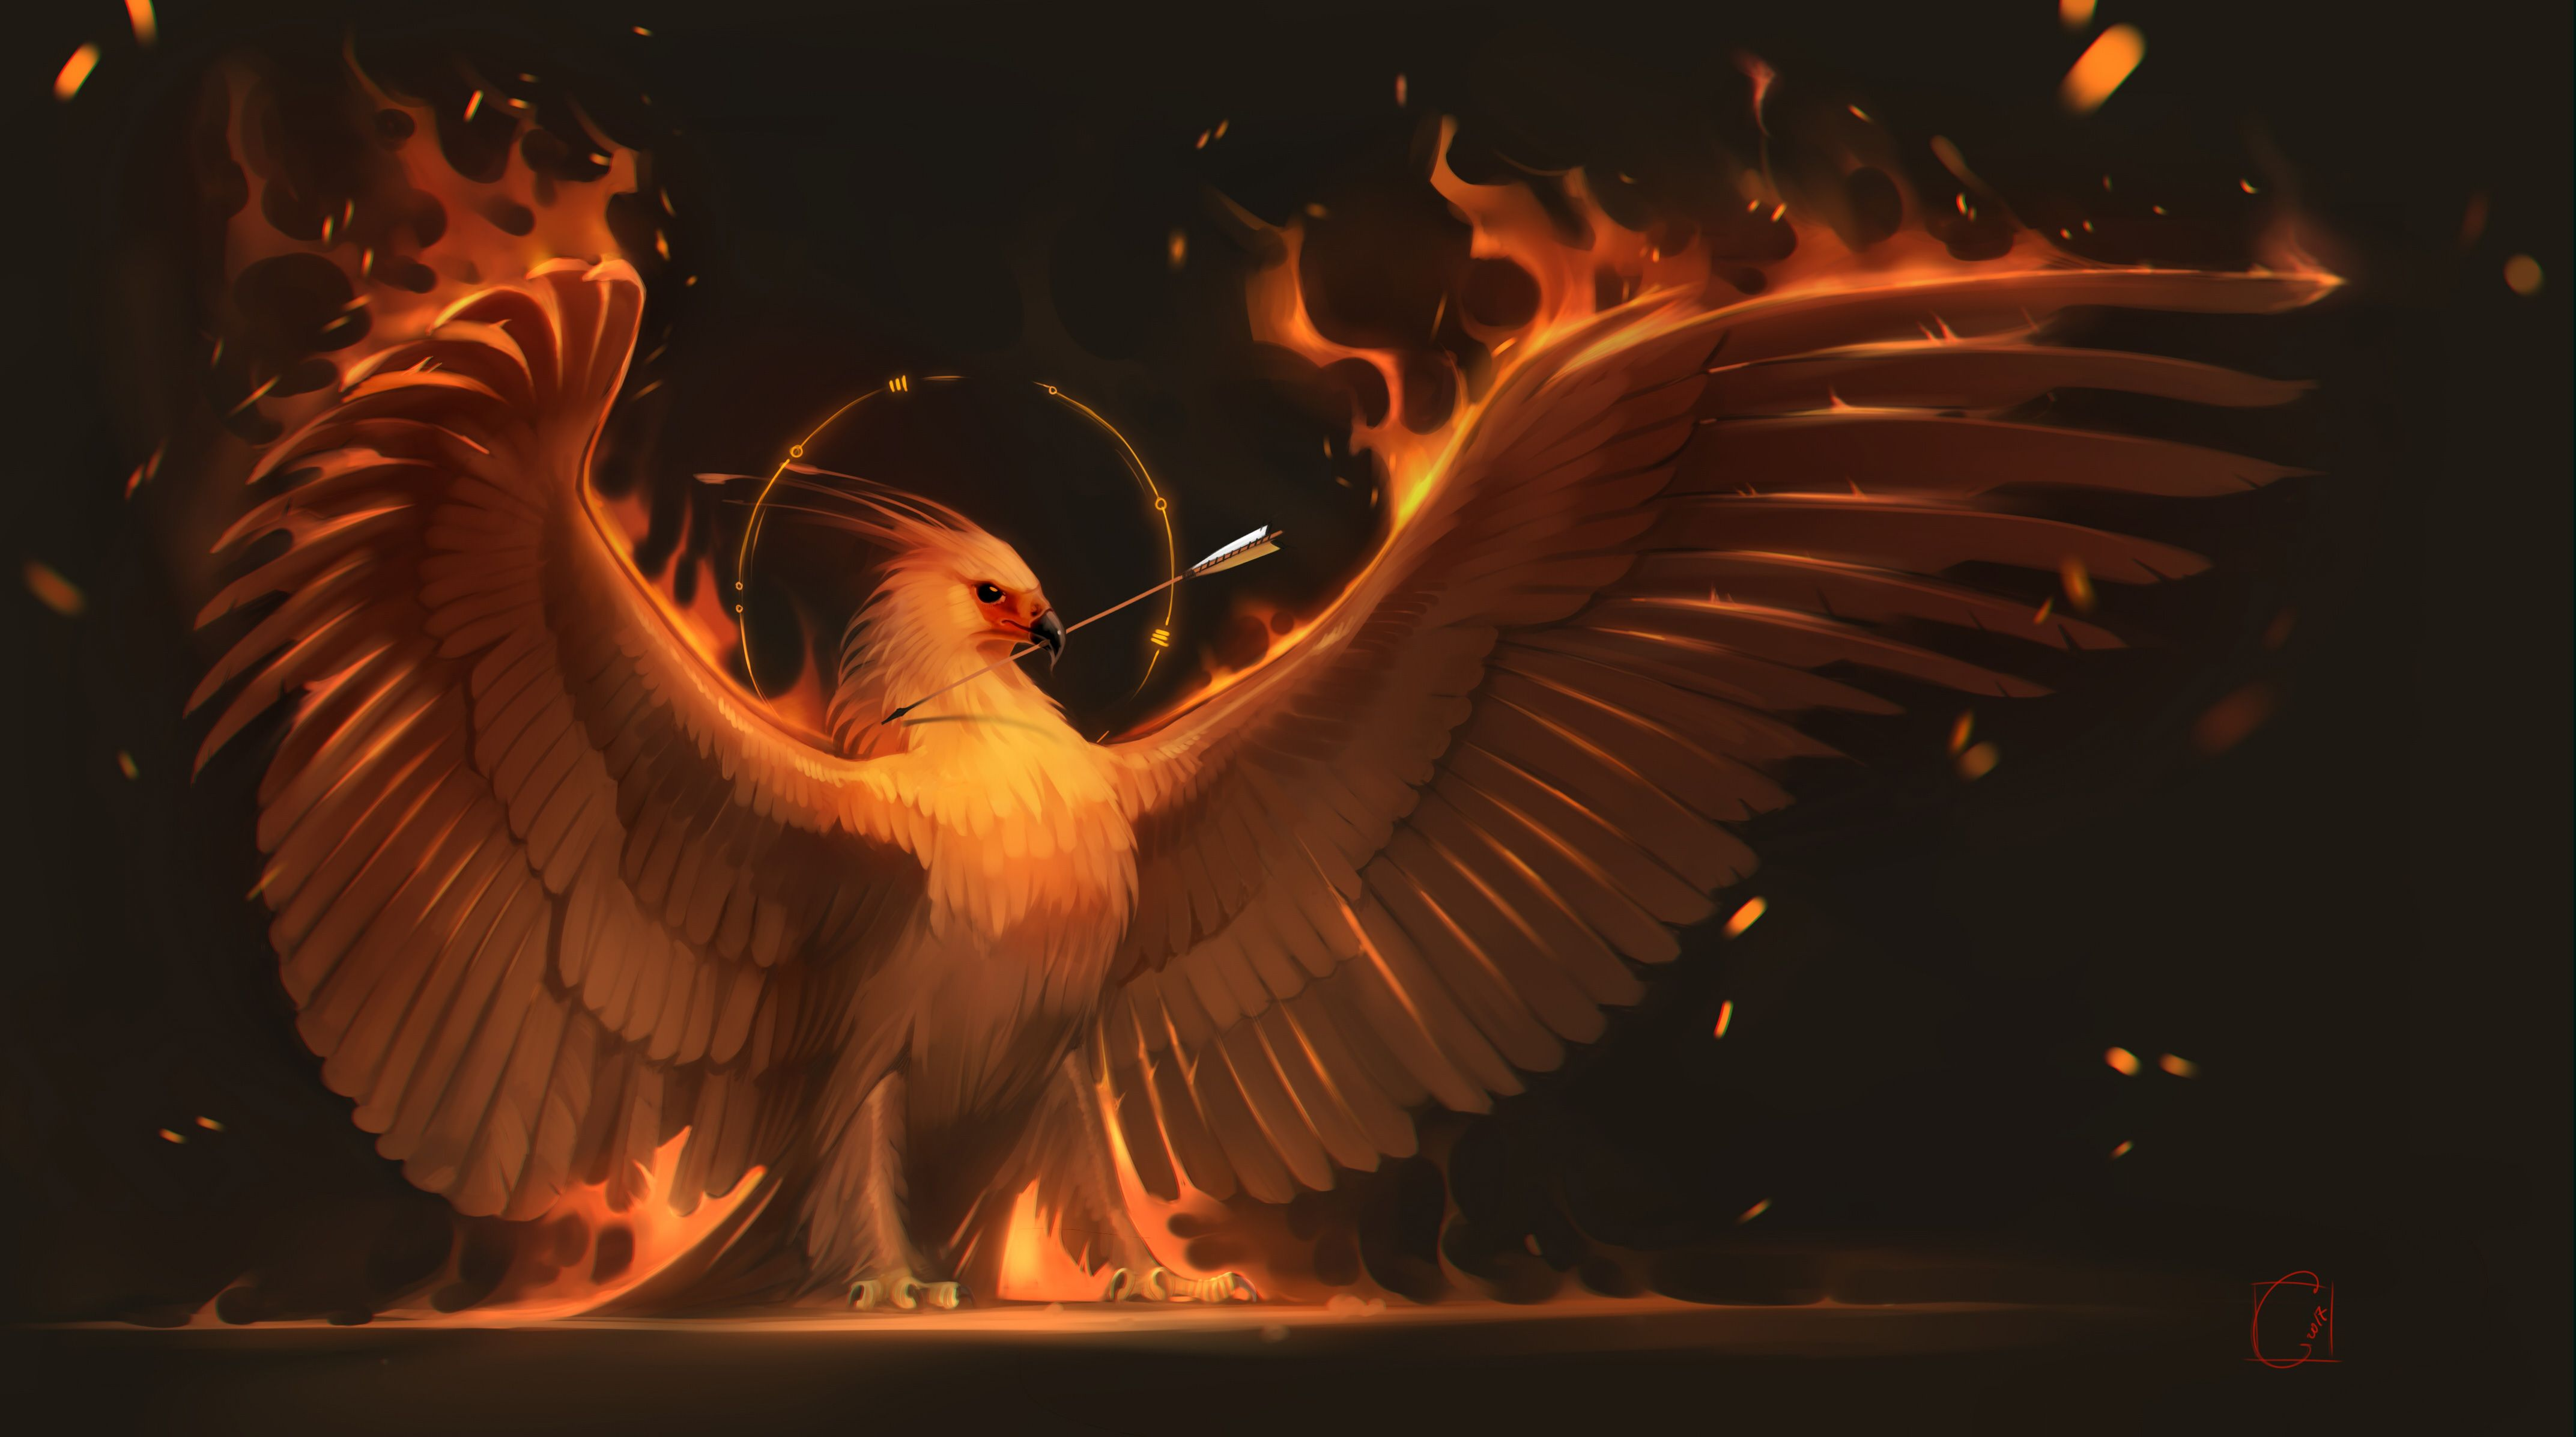 50 Phoenix On Fire Wallpapers   Download at WallpaperBro 4289x2392